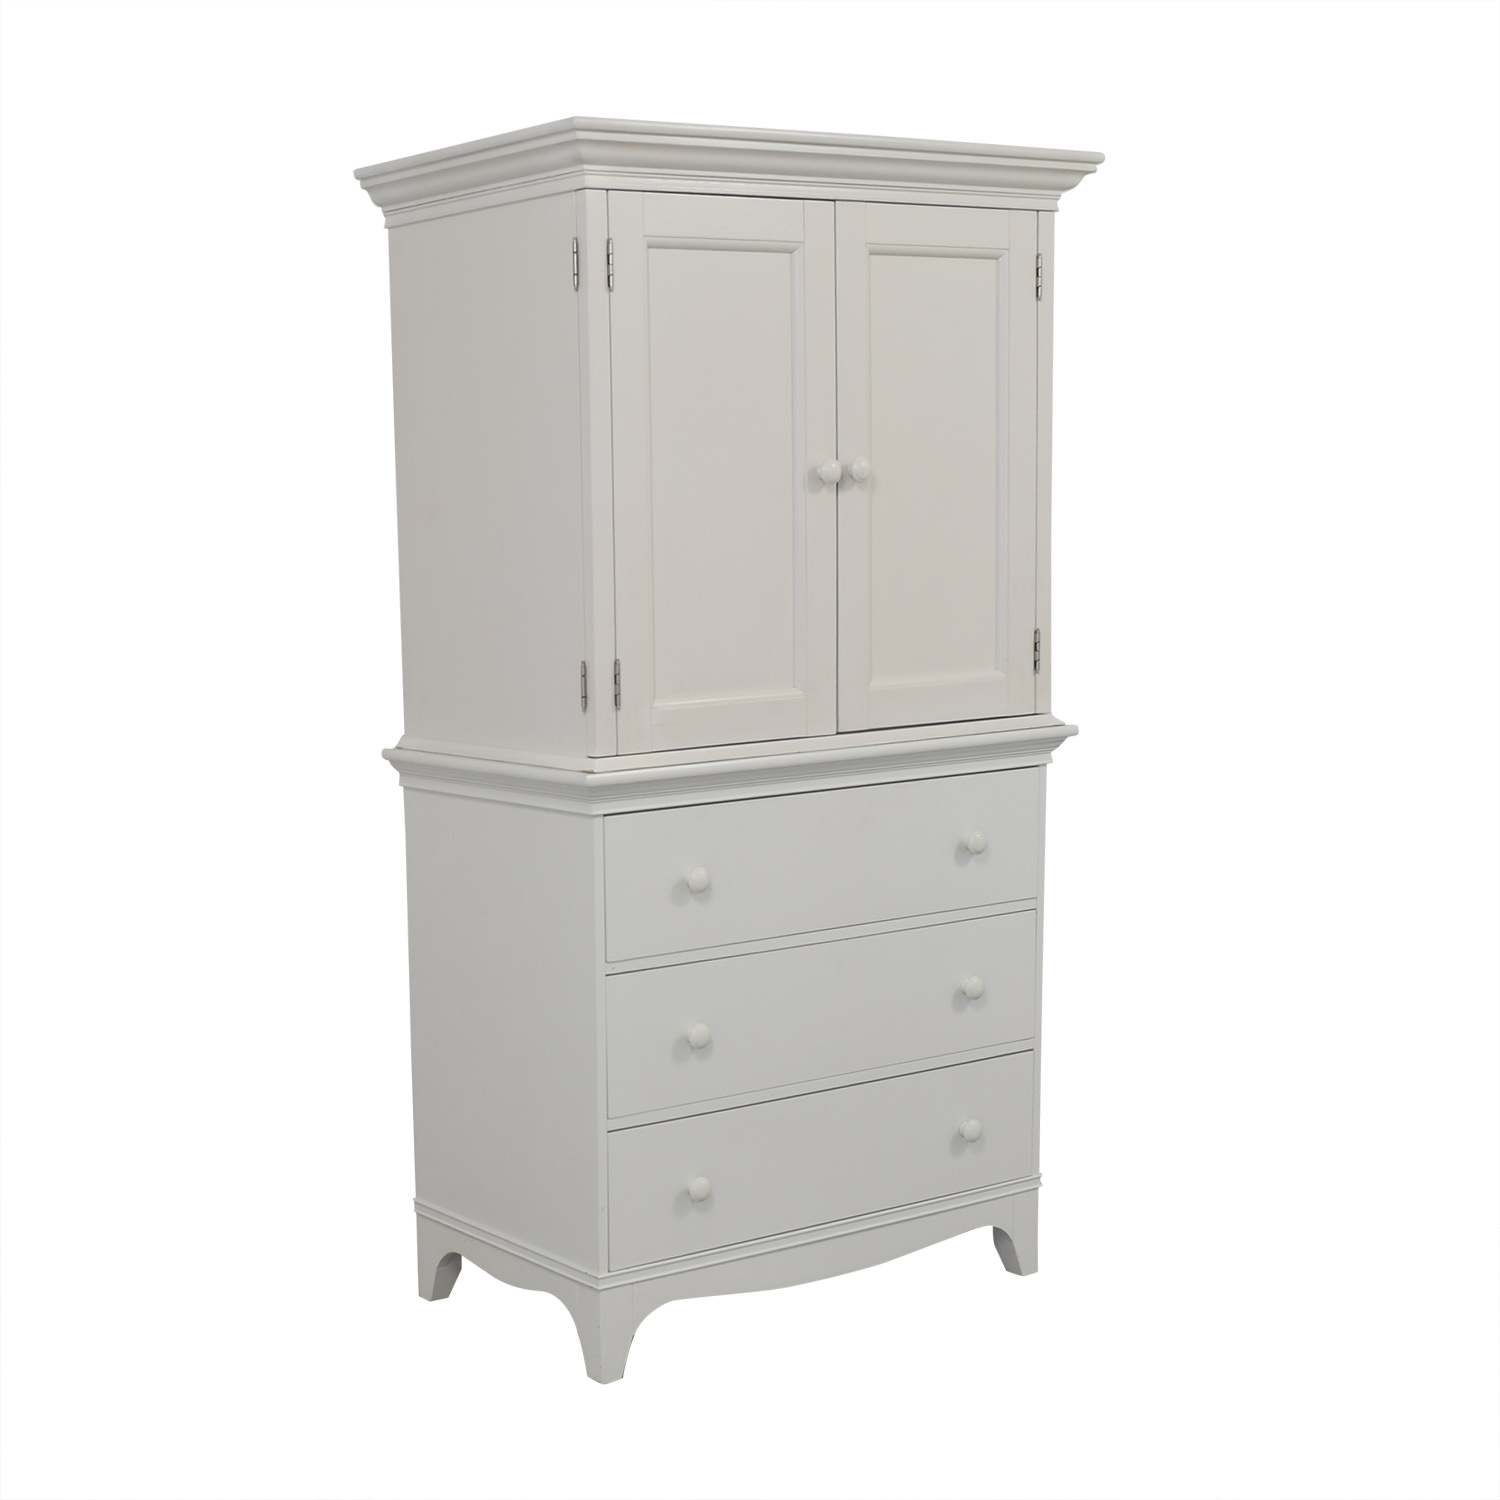 Crate & Barrel Crate & Barrel White Armoire second hand